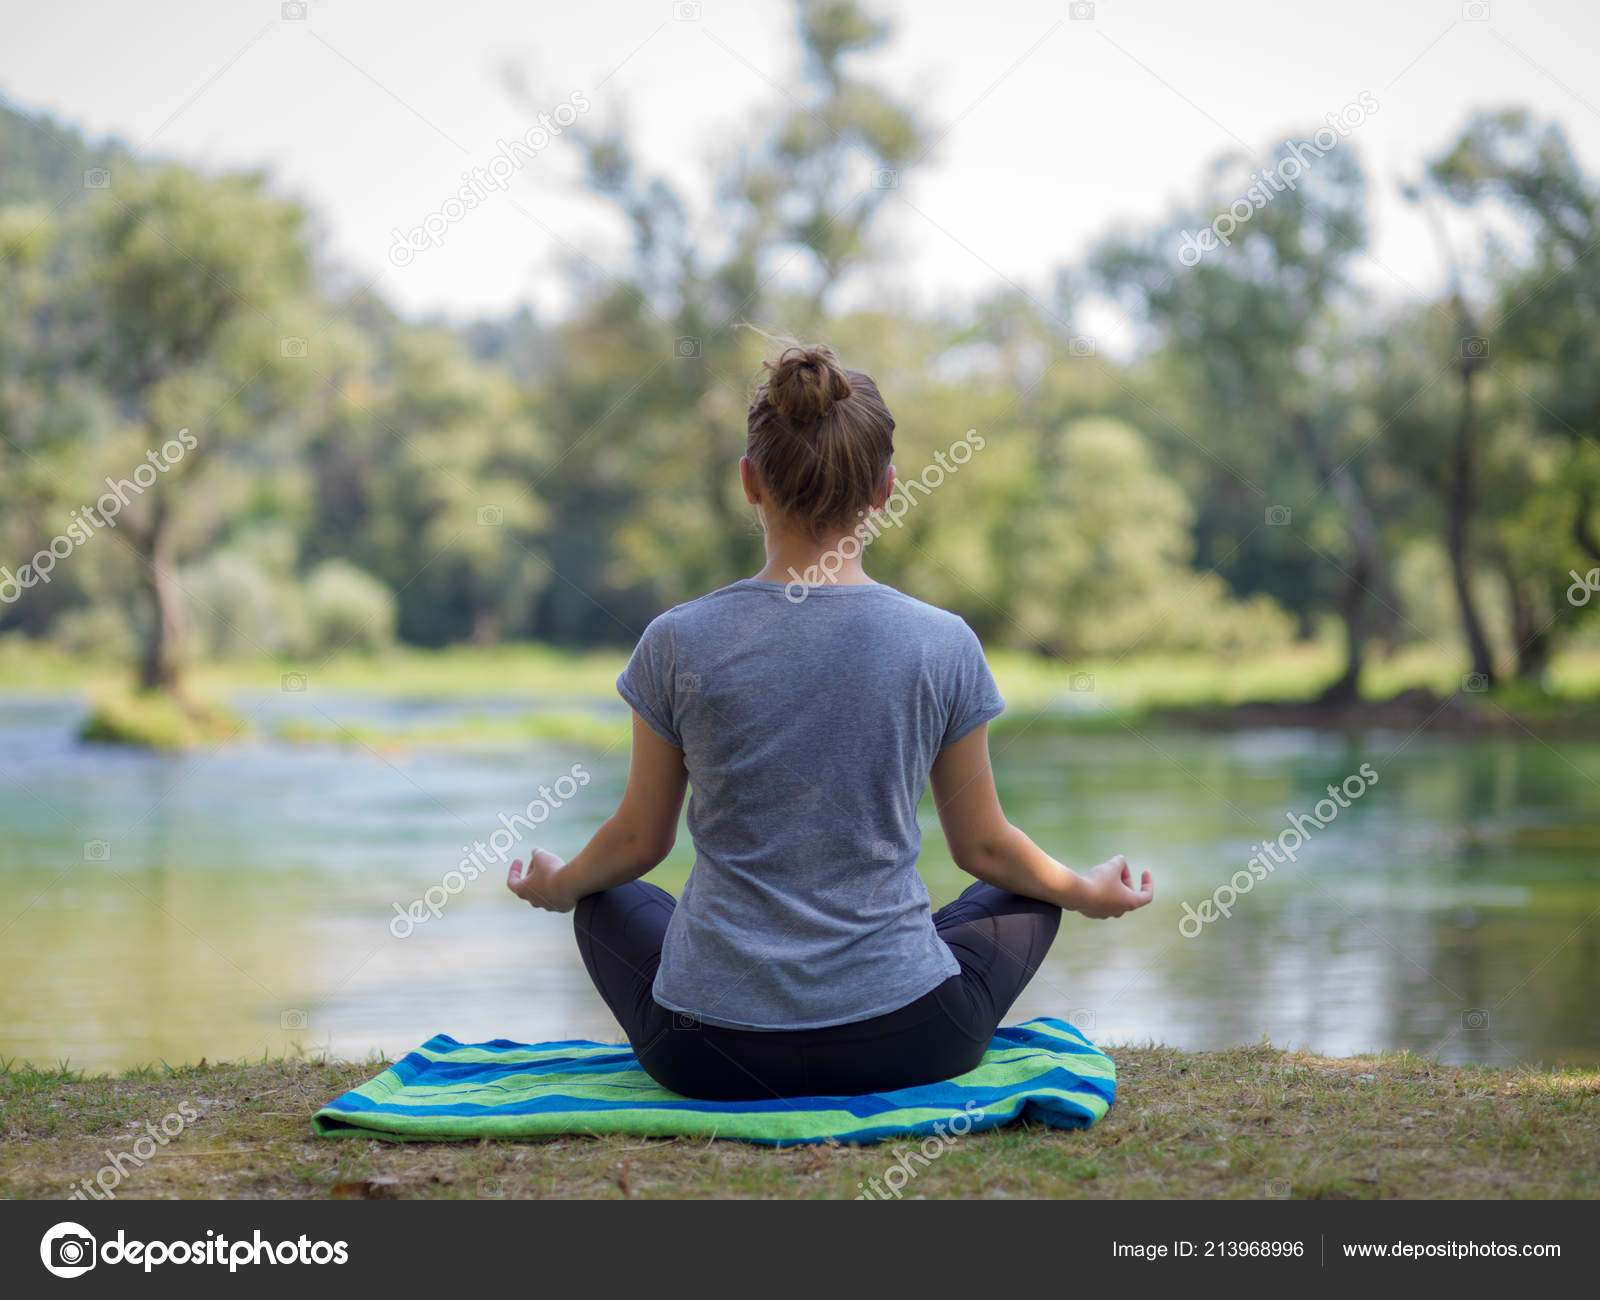 Healthy Woman Relaxing While Meditating Doing Yoga Exercise Beautiful Nature Stock Photo C Shock 213968996